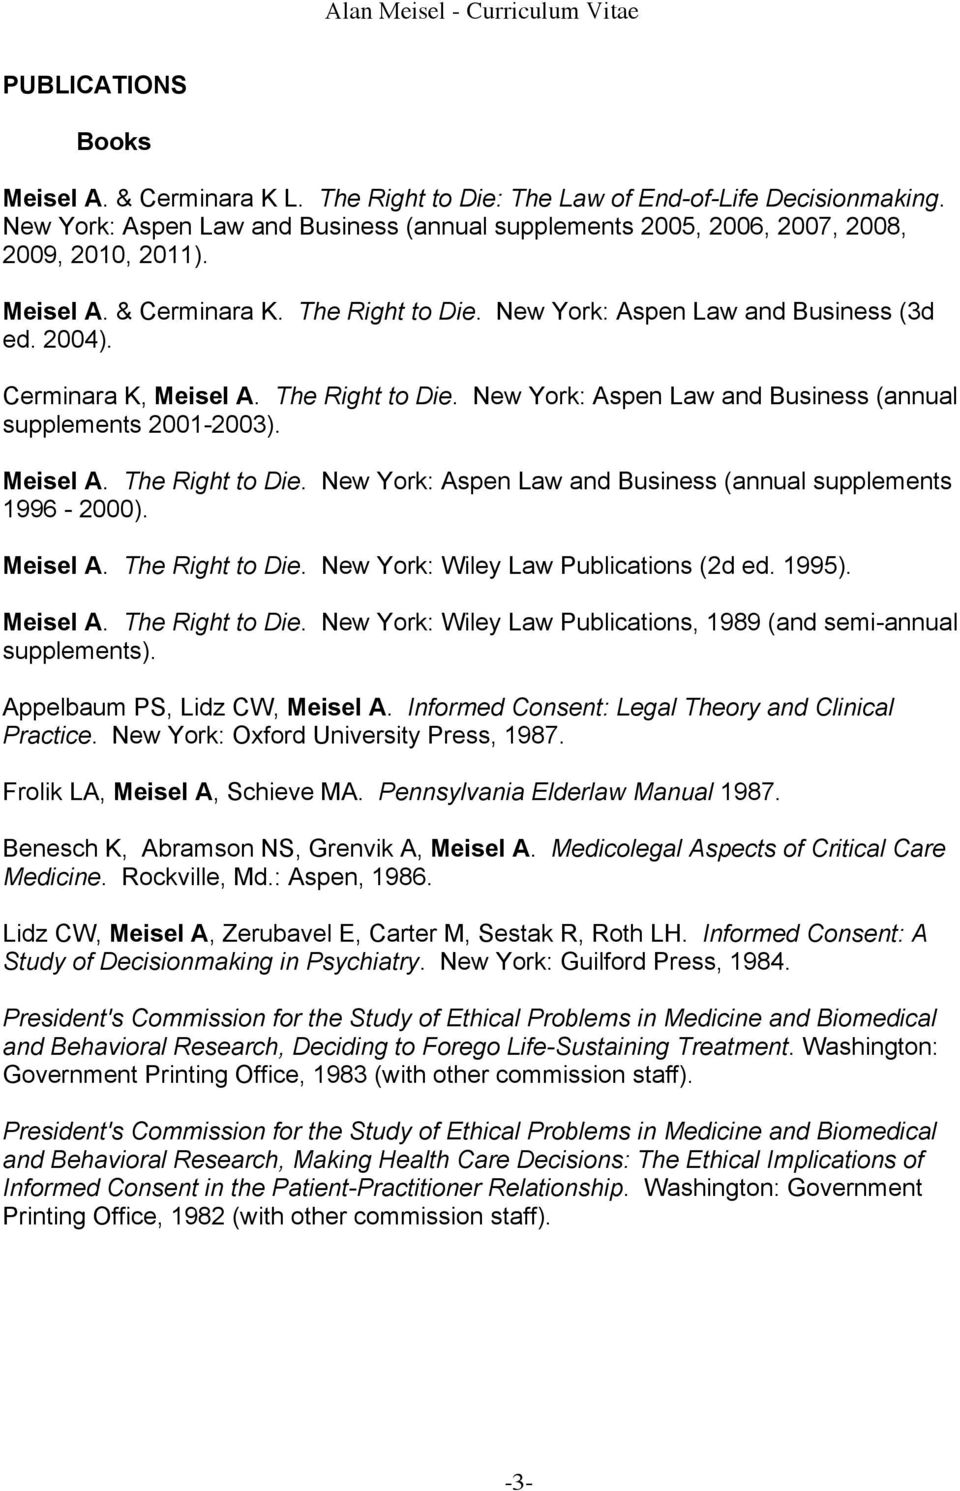 Meisel A. The Right to Die. New York: Aspen Law and Business (annual supplements 1996-2000). Meisel A. The Right to Die. New York: Wiley Law Publications (2d ed. 1995). Meisel A. The Right to Die. New York: Wiley Law Publications, 1989 (and semi-annual supplements).